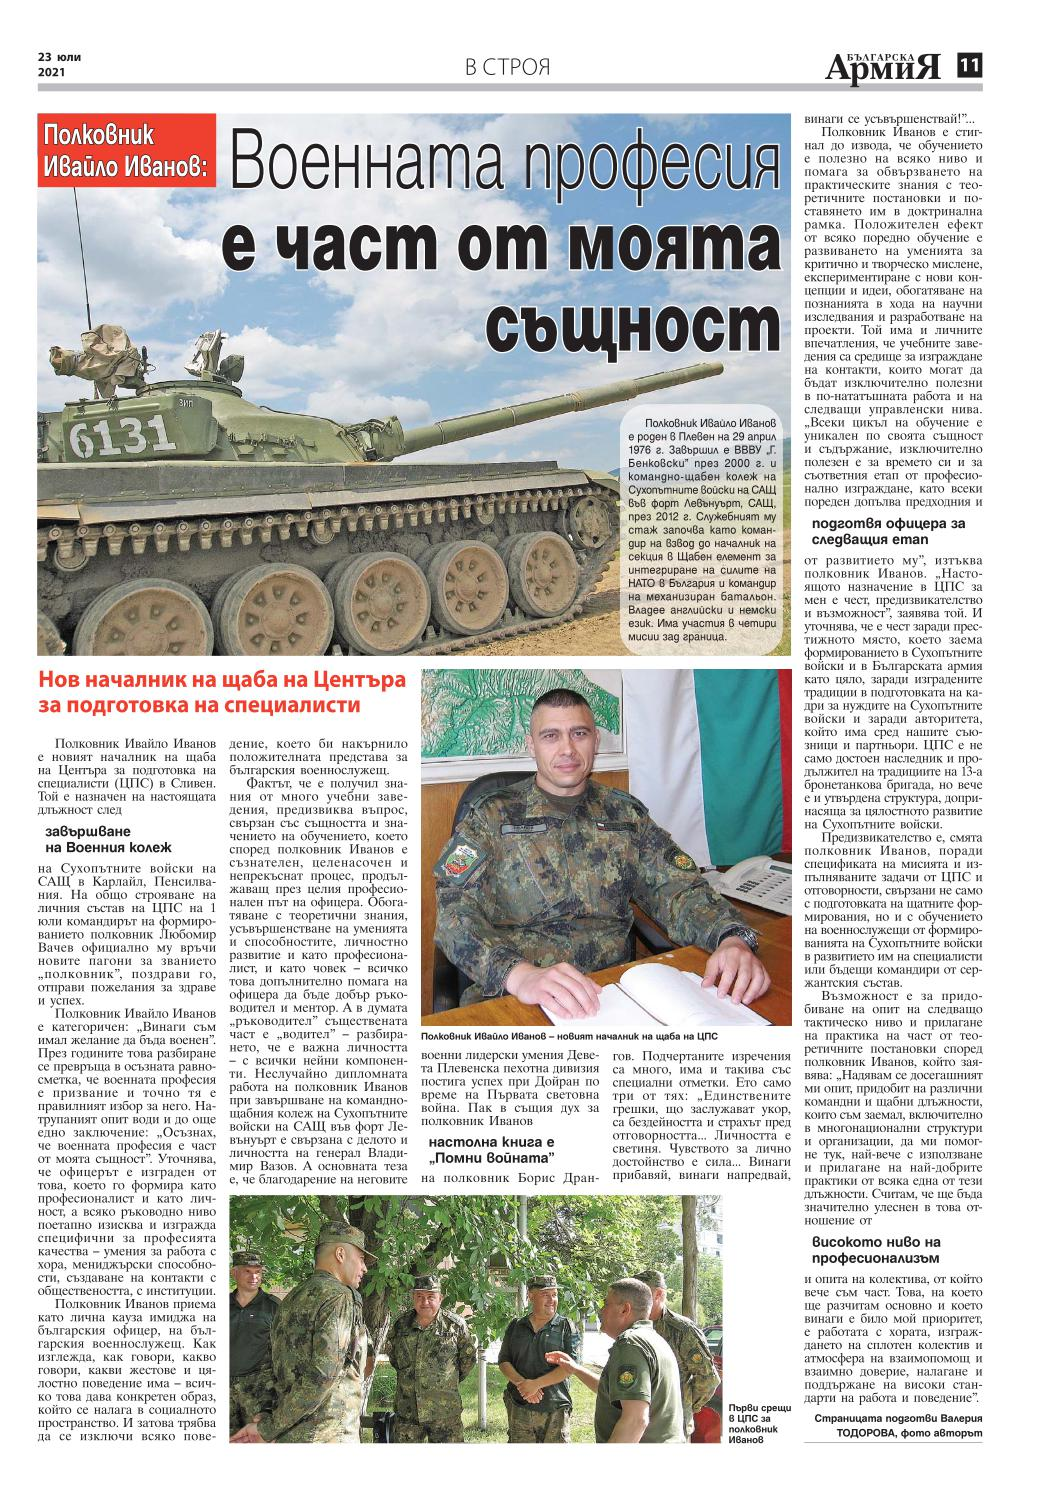 https://armymedia.bg/wp-content/uploads/2021/07/11.page1_-3.jpg